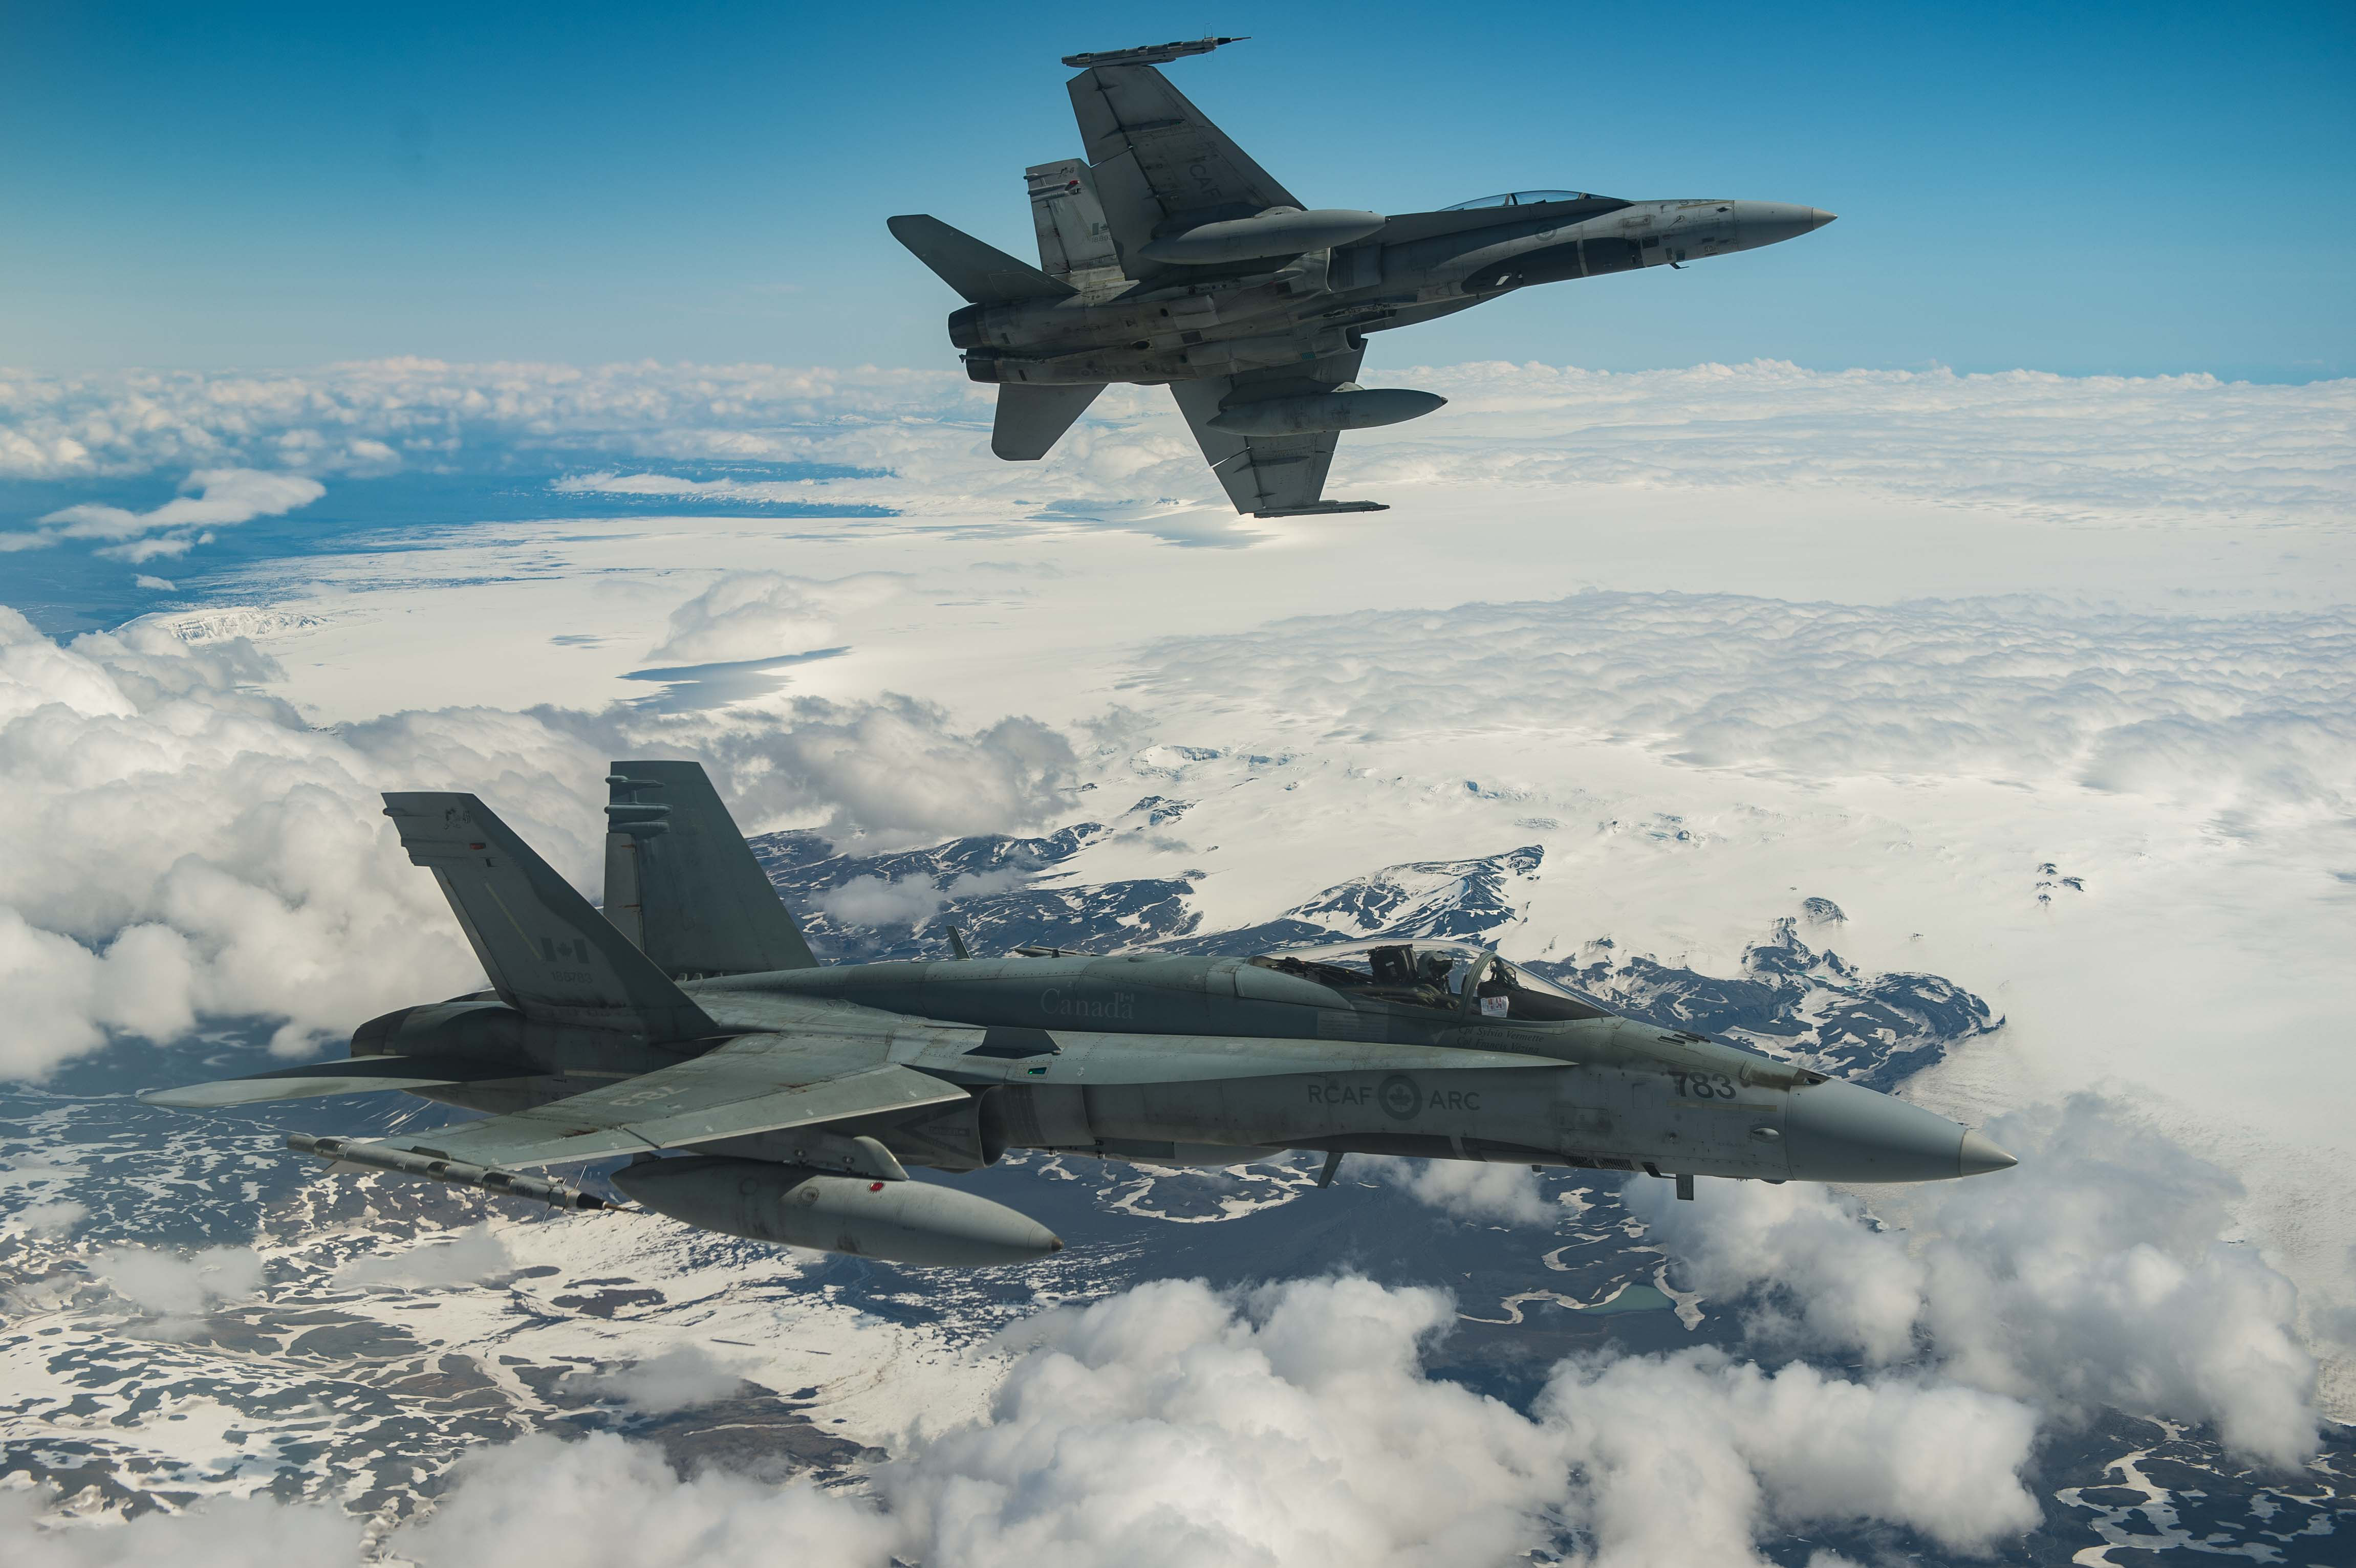 Two Royal Canadian Air Force CF-188 Hornet fighters from 433 Tactical Fighter Squadron fly over Iceland on May 31, 2017 during an Operation REASSURANCE surveillance mission.  (Photo: Corporal Gary Calvé. Imagery Technician ATF-ICELAND)